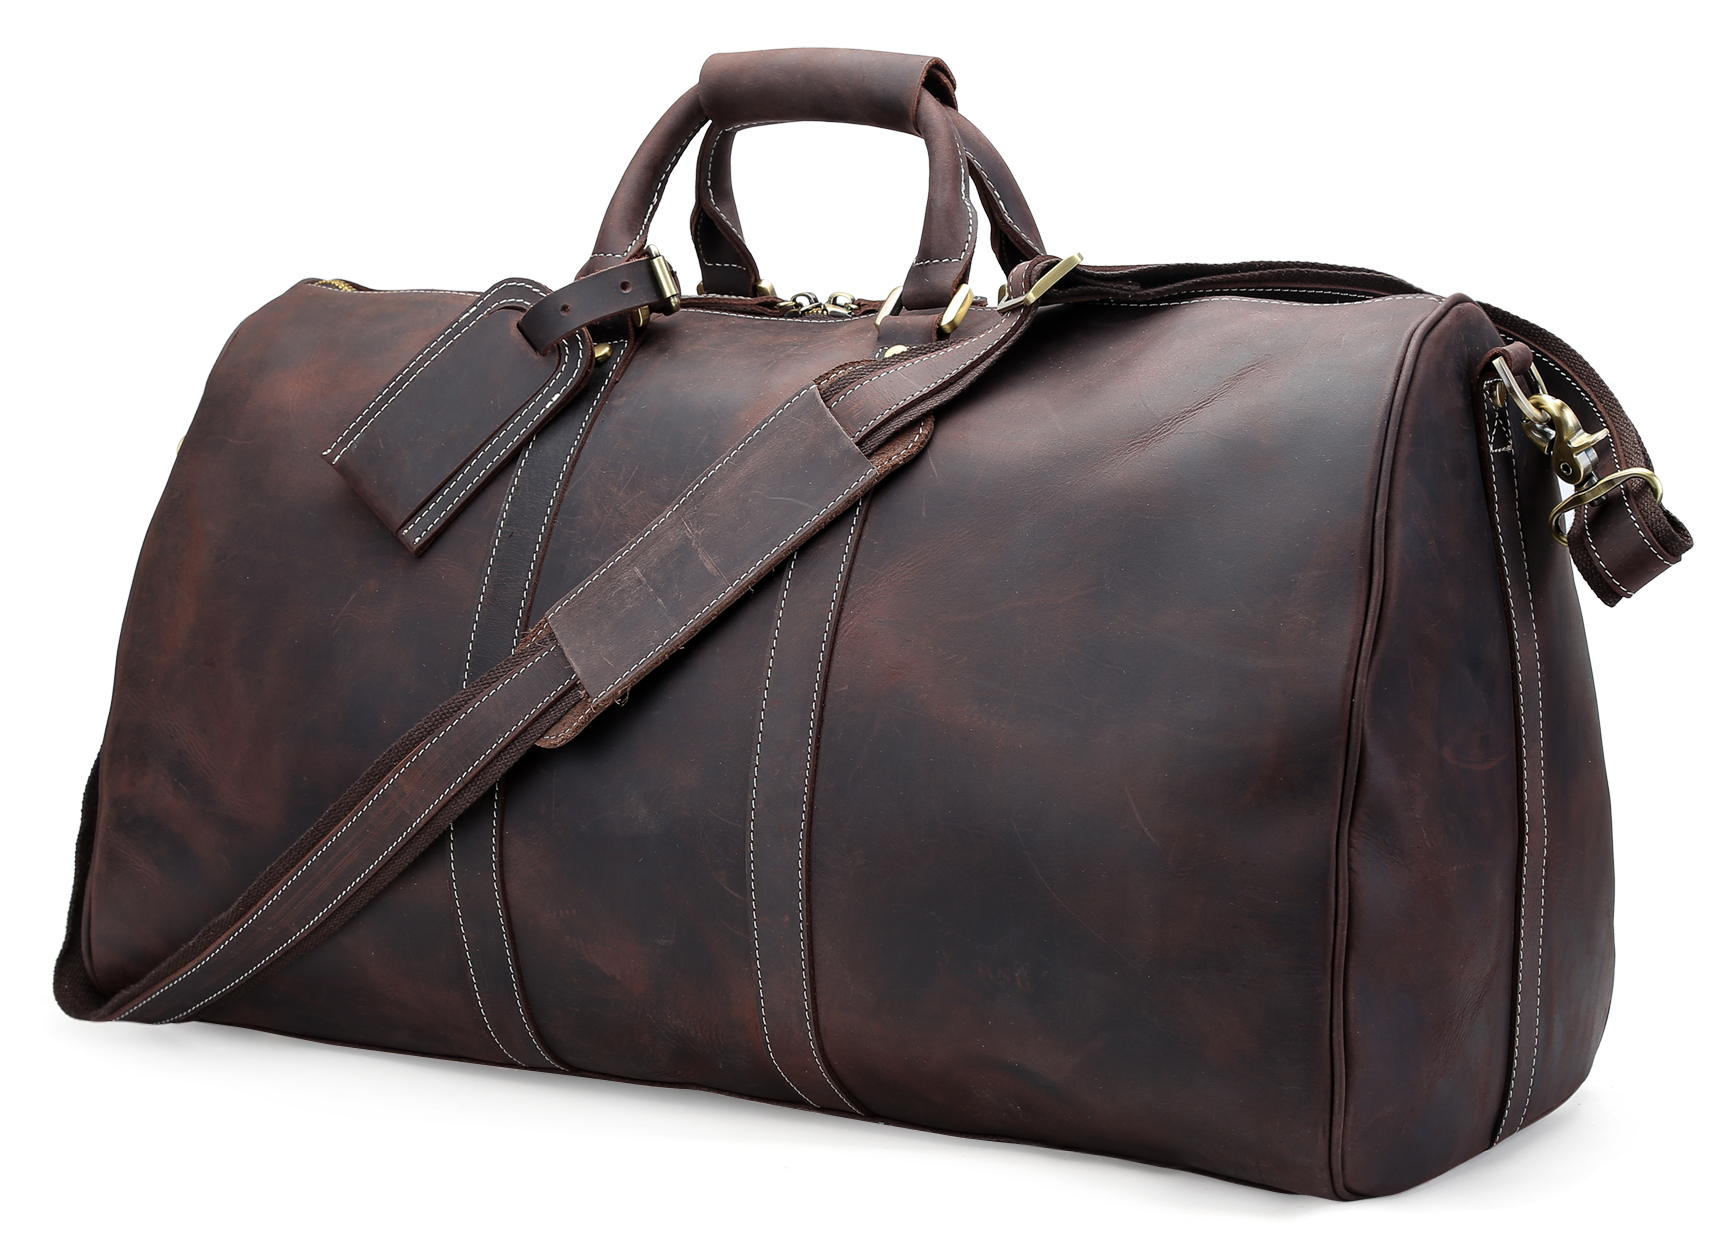 Vintage Crazy Horse Leather Travel Bag Luggage Duffle Bagall Hand Stitched Very Rigorous Luggage Bags Travel Leather Travel Bag Leather Messenger Bag Men